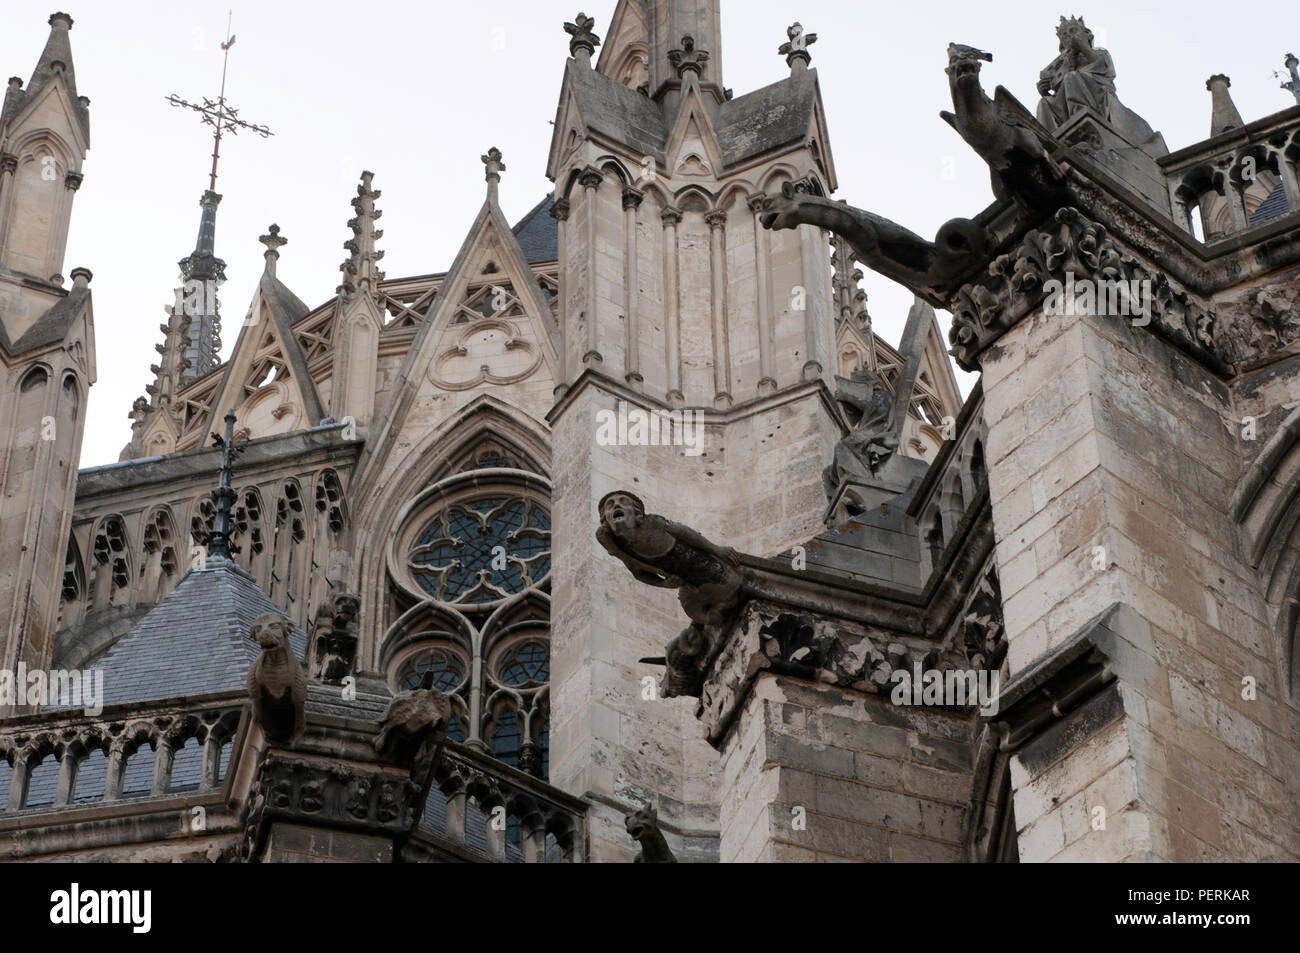 Frightening gargoyles extend from the Amiens Cathedral, Notre-Dame dAmiens, in Amiens, France. Amiens is worth a visit when traveling Northern France. - Stock Image